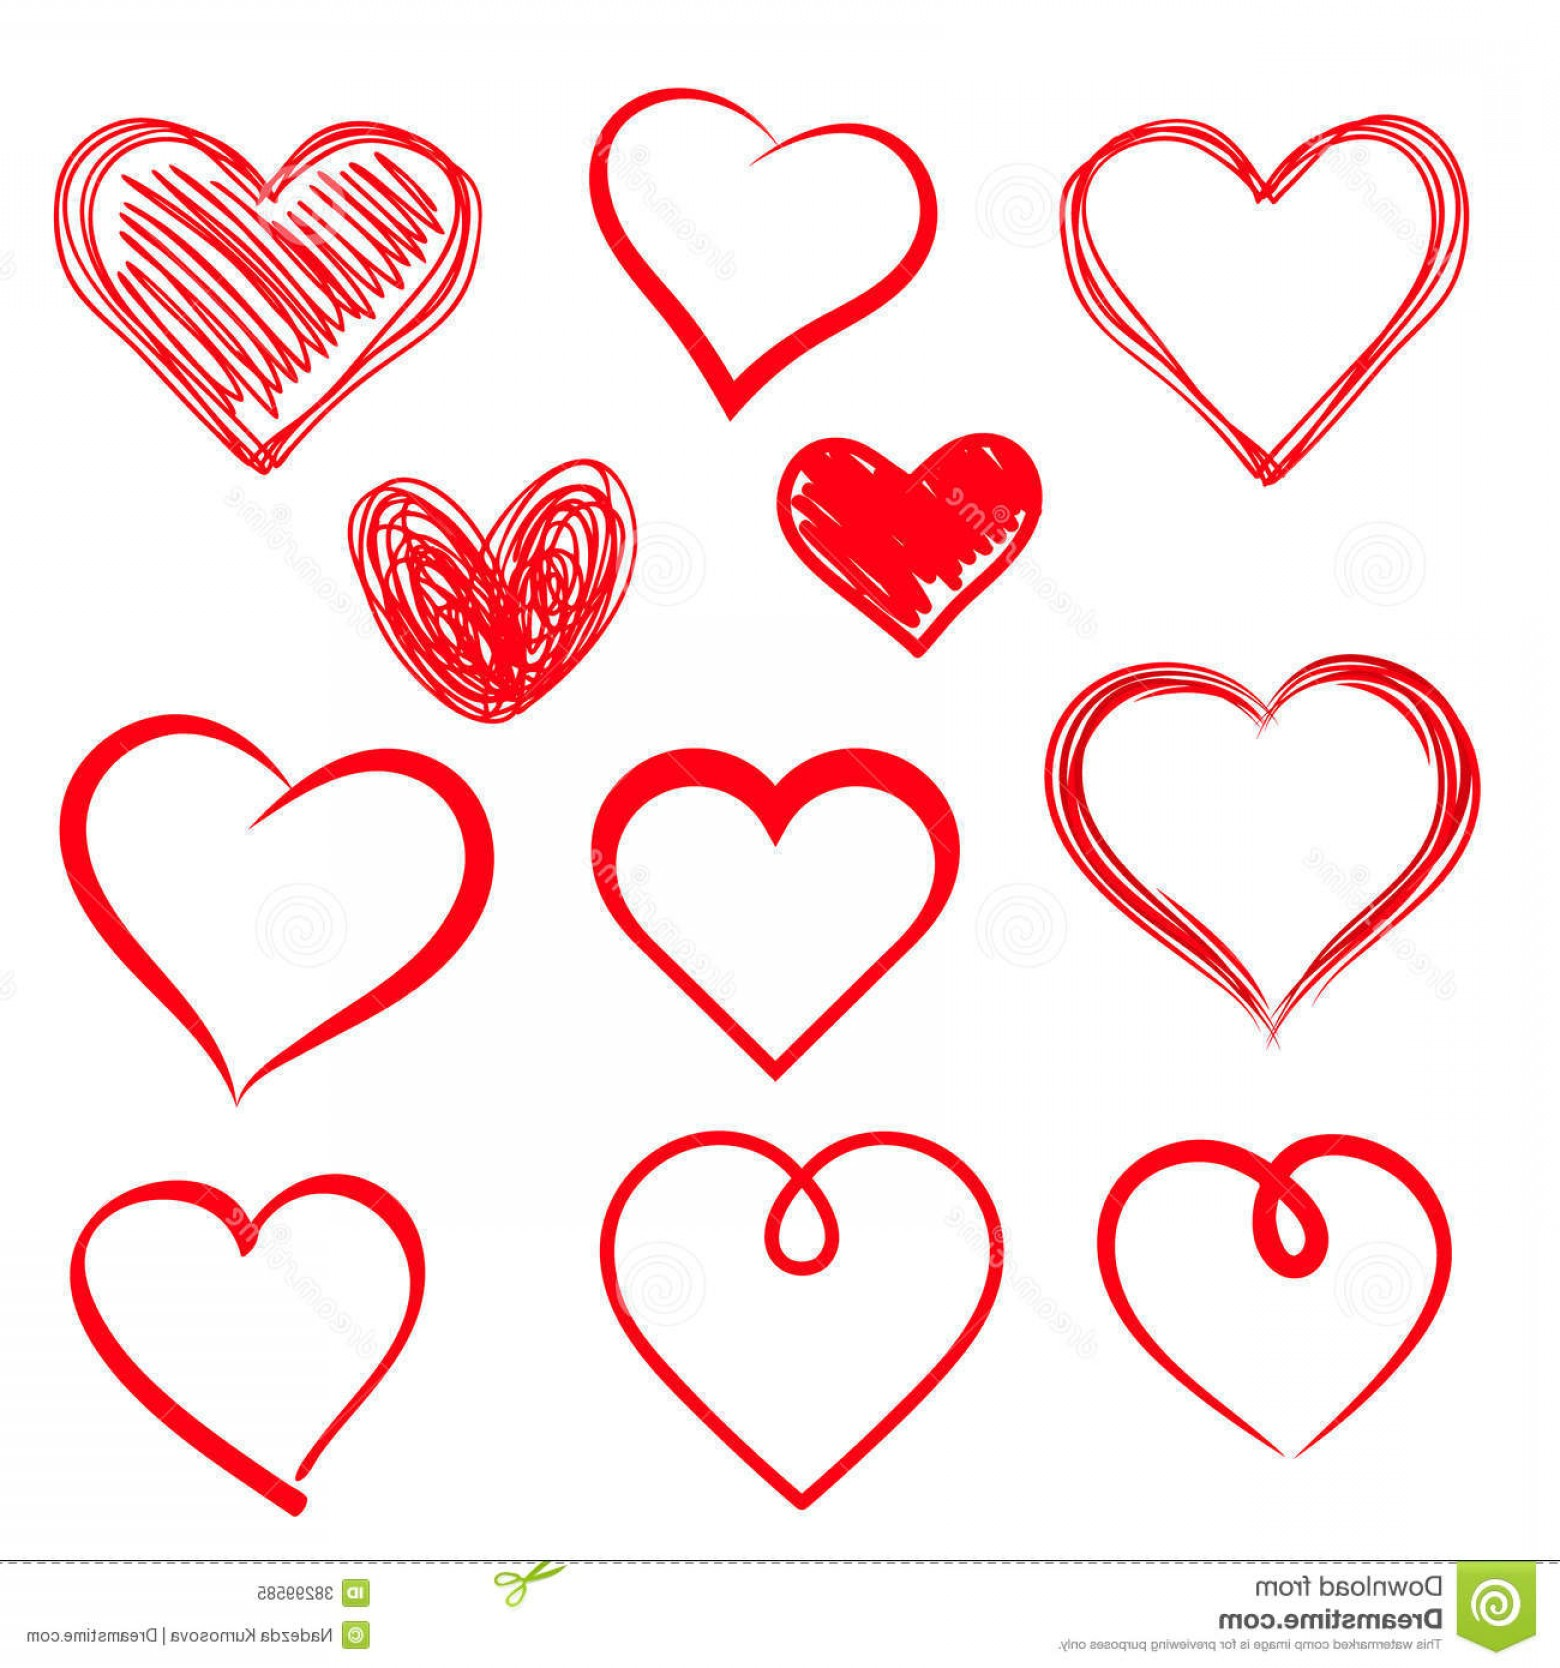 Free Heart Vector Design: Royalty Free Stock Photo Vector Hearts Set Hand Drawn File Eps Format Image